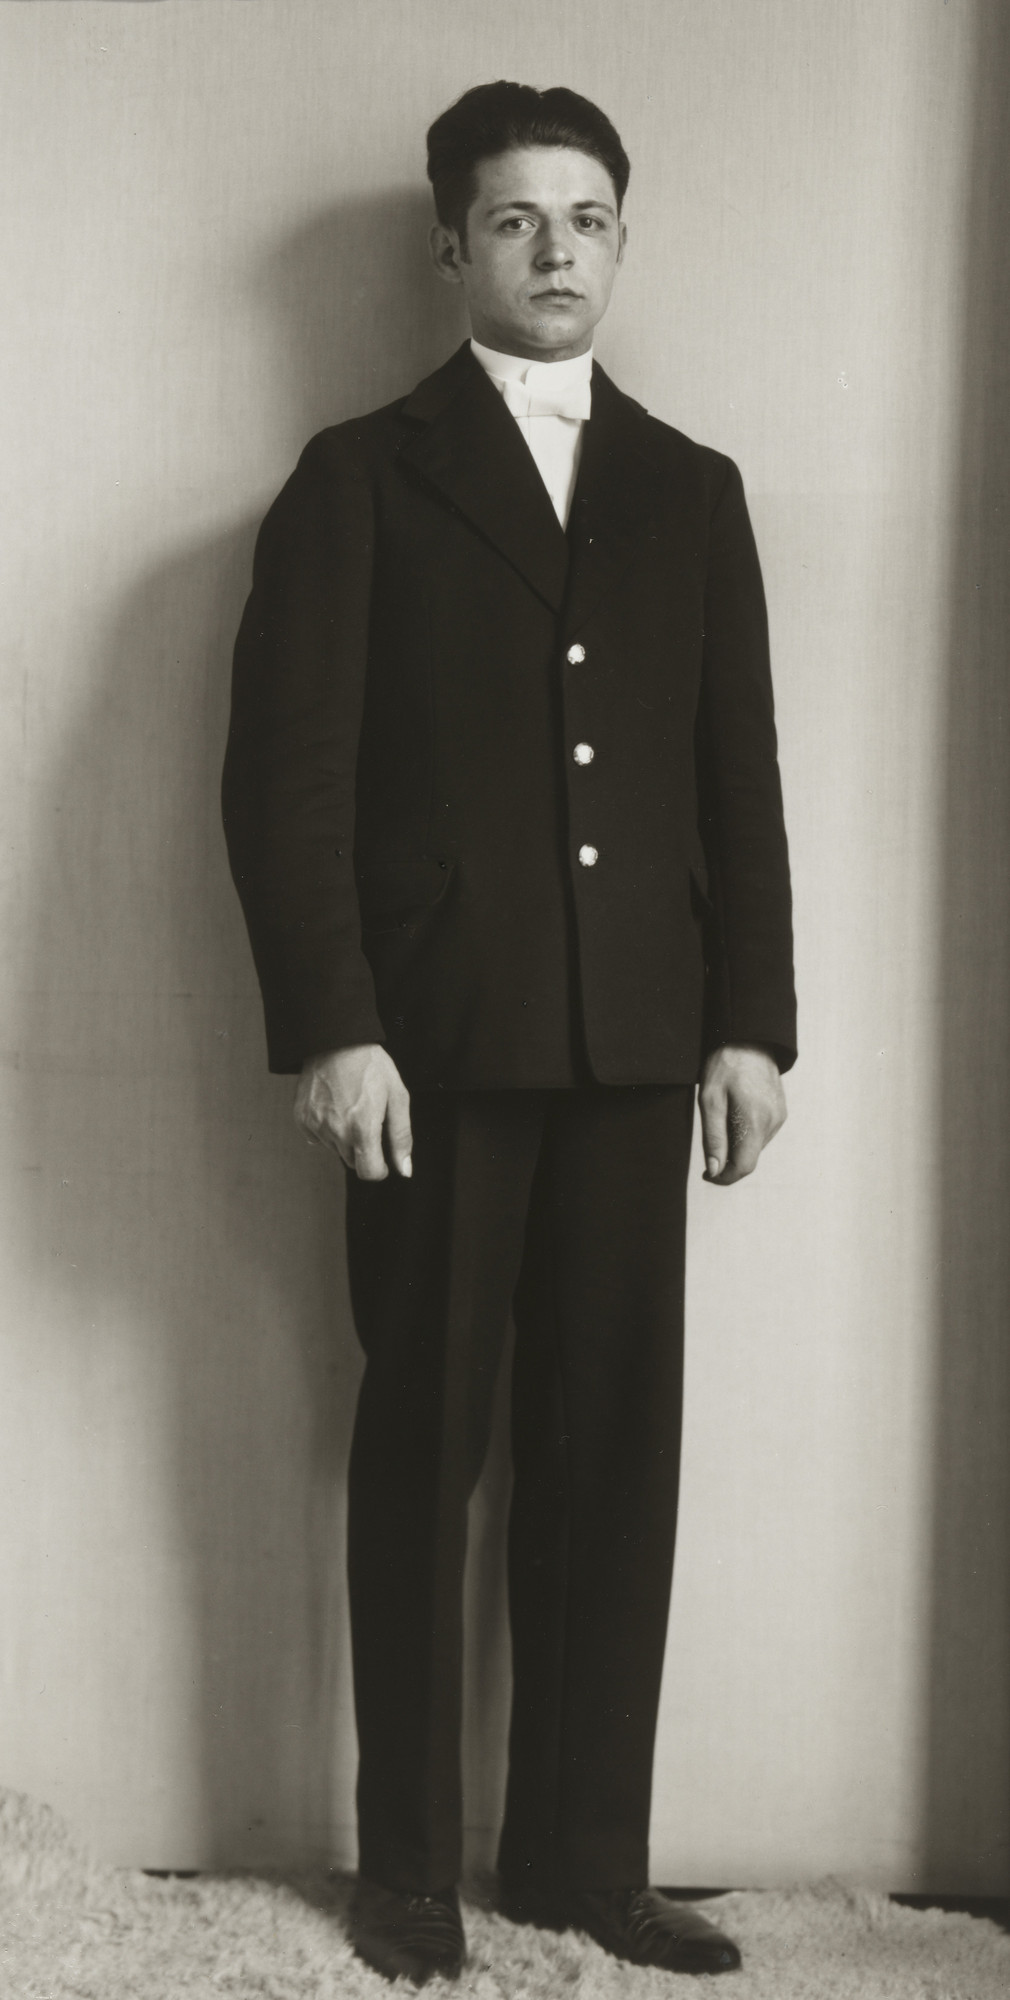 August Sander. Servant in a Grand Household. c. 1928